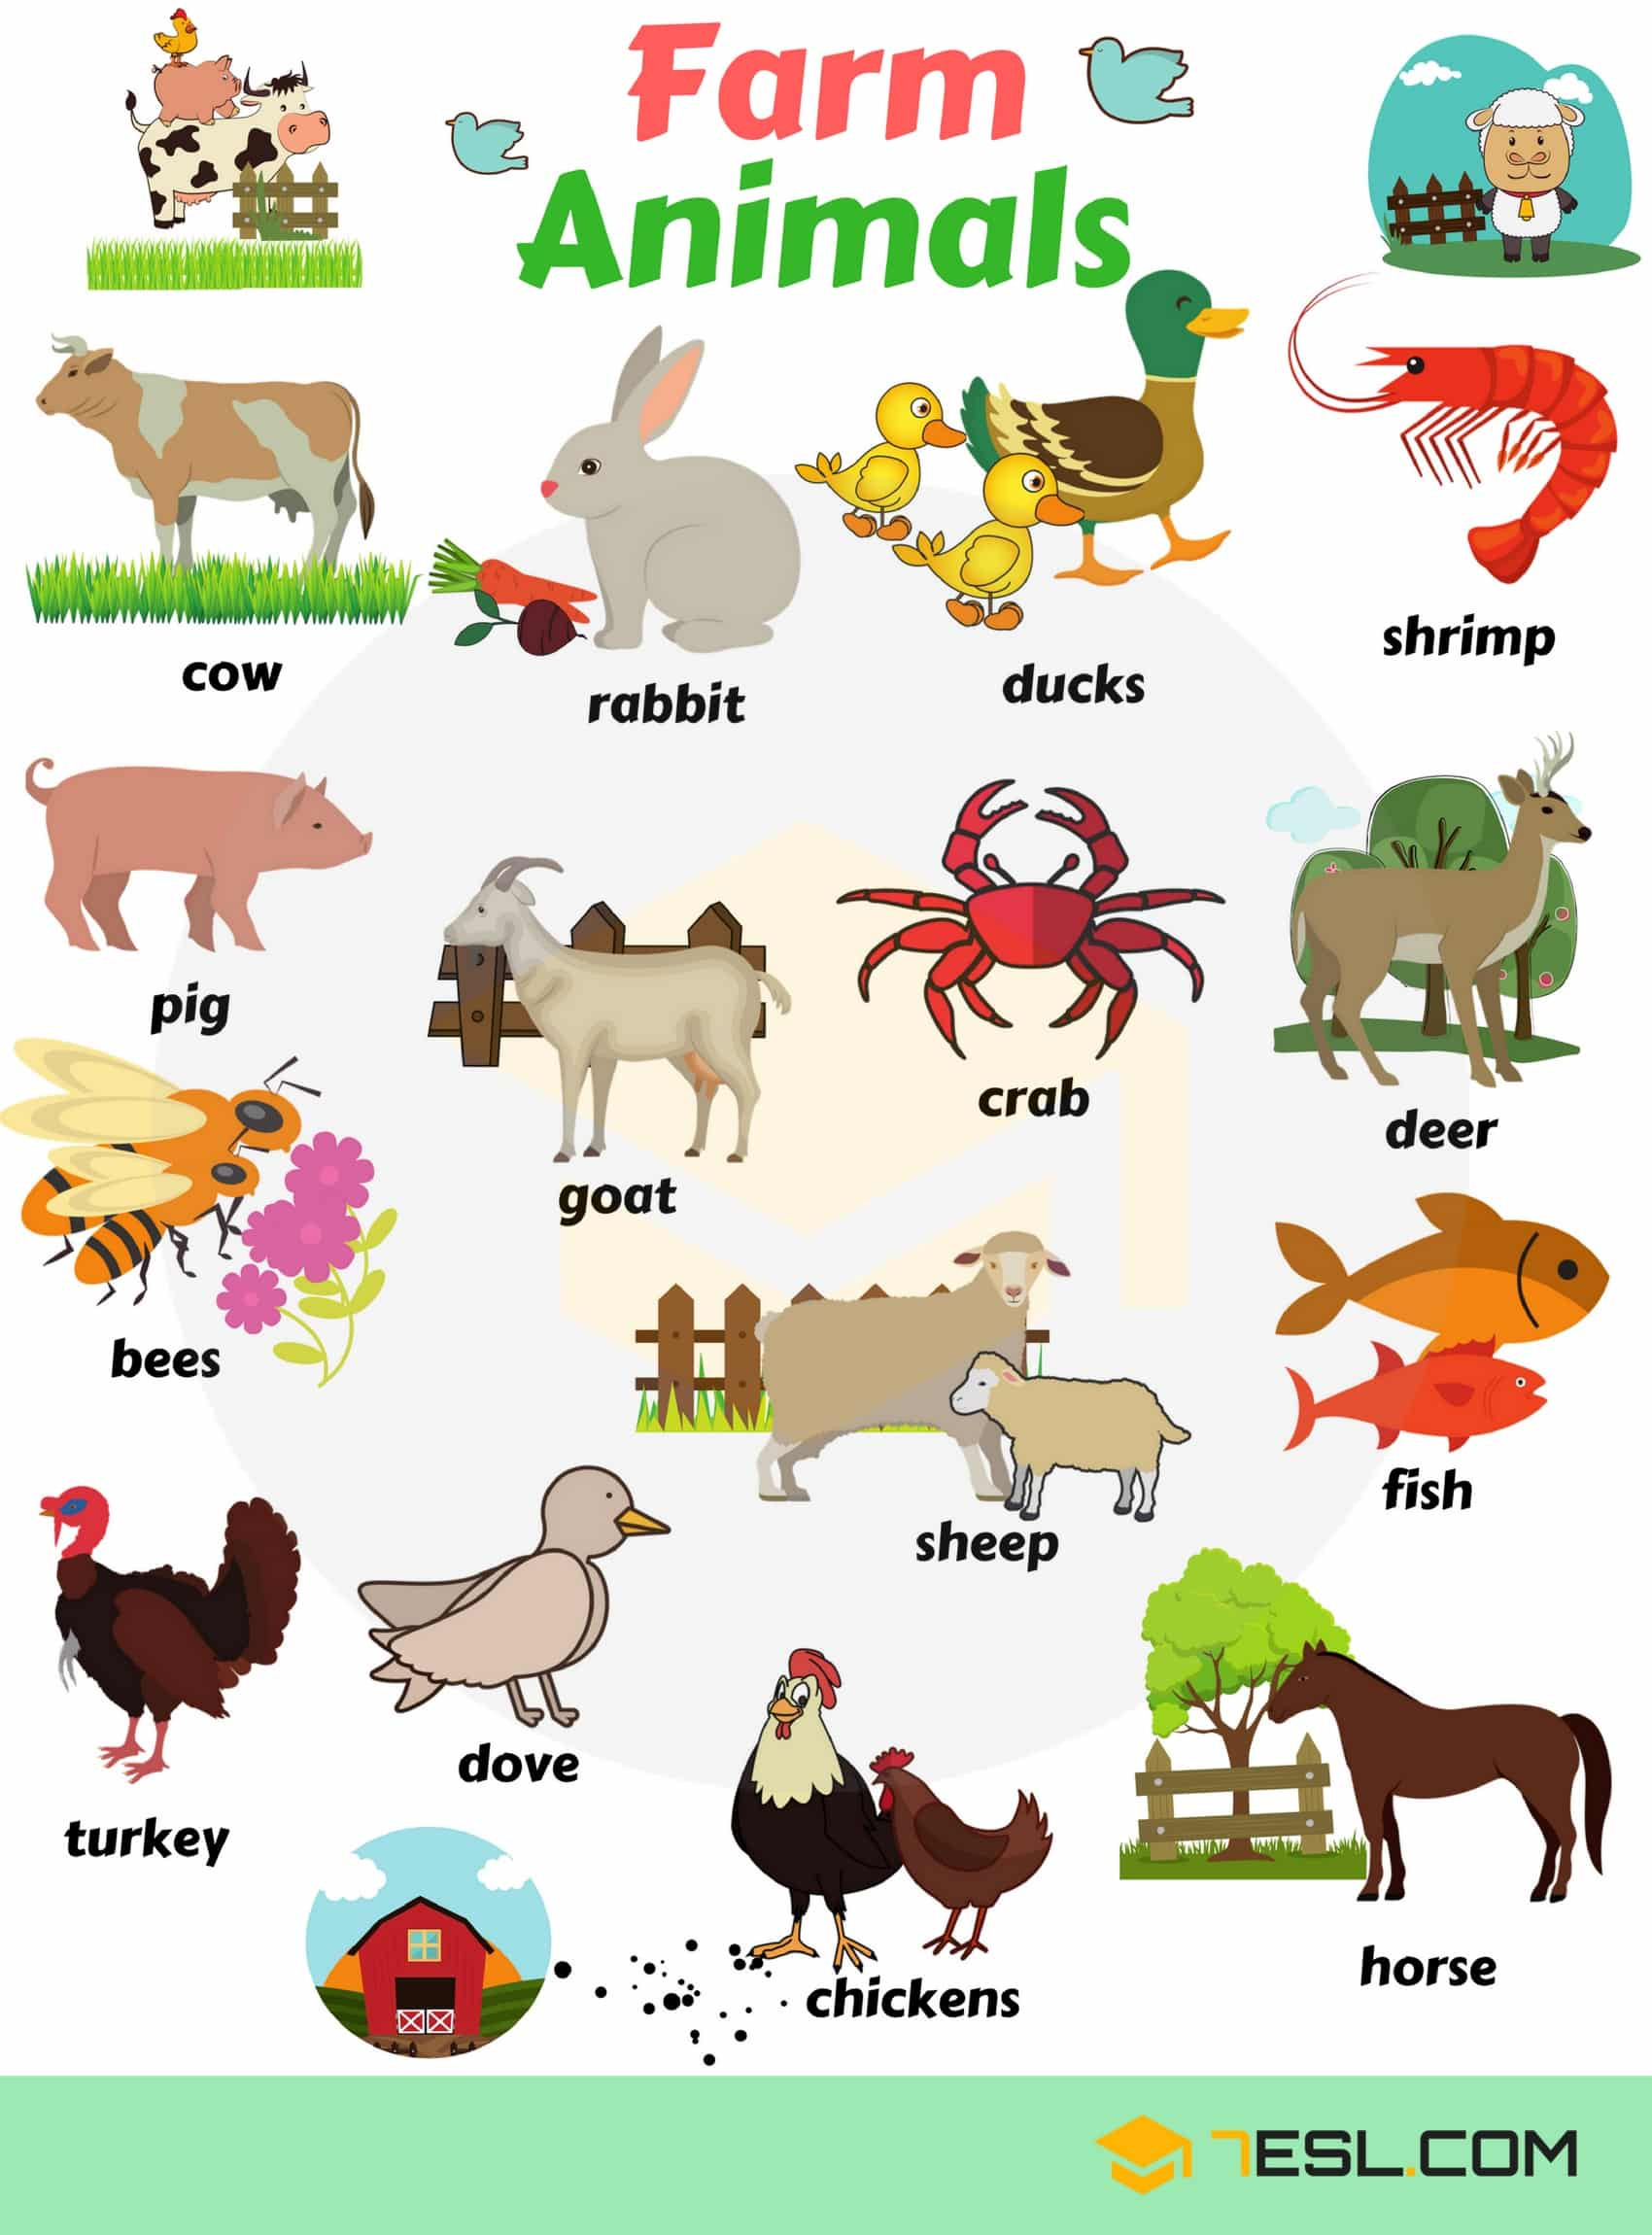 Animal Names: Types of Animals with List & Pictures • 7ESL